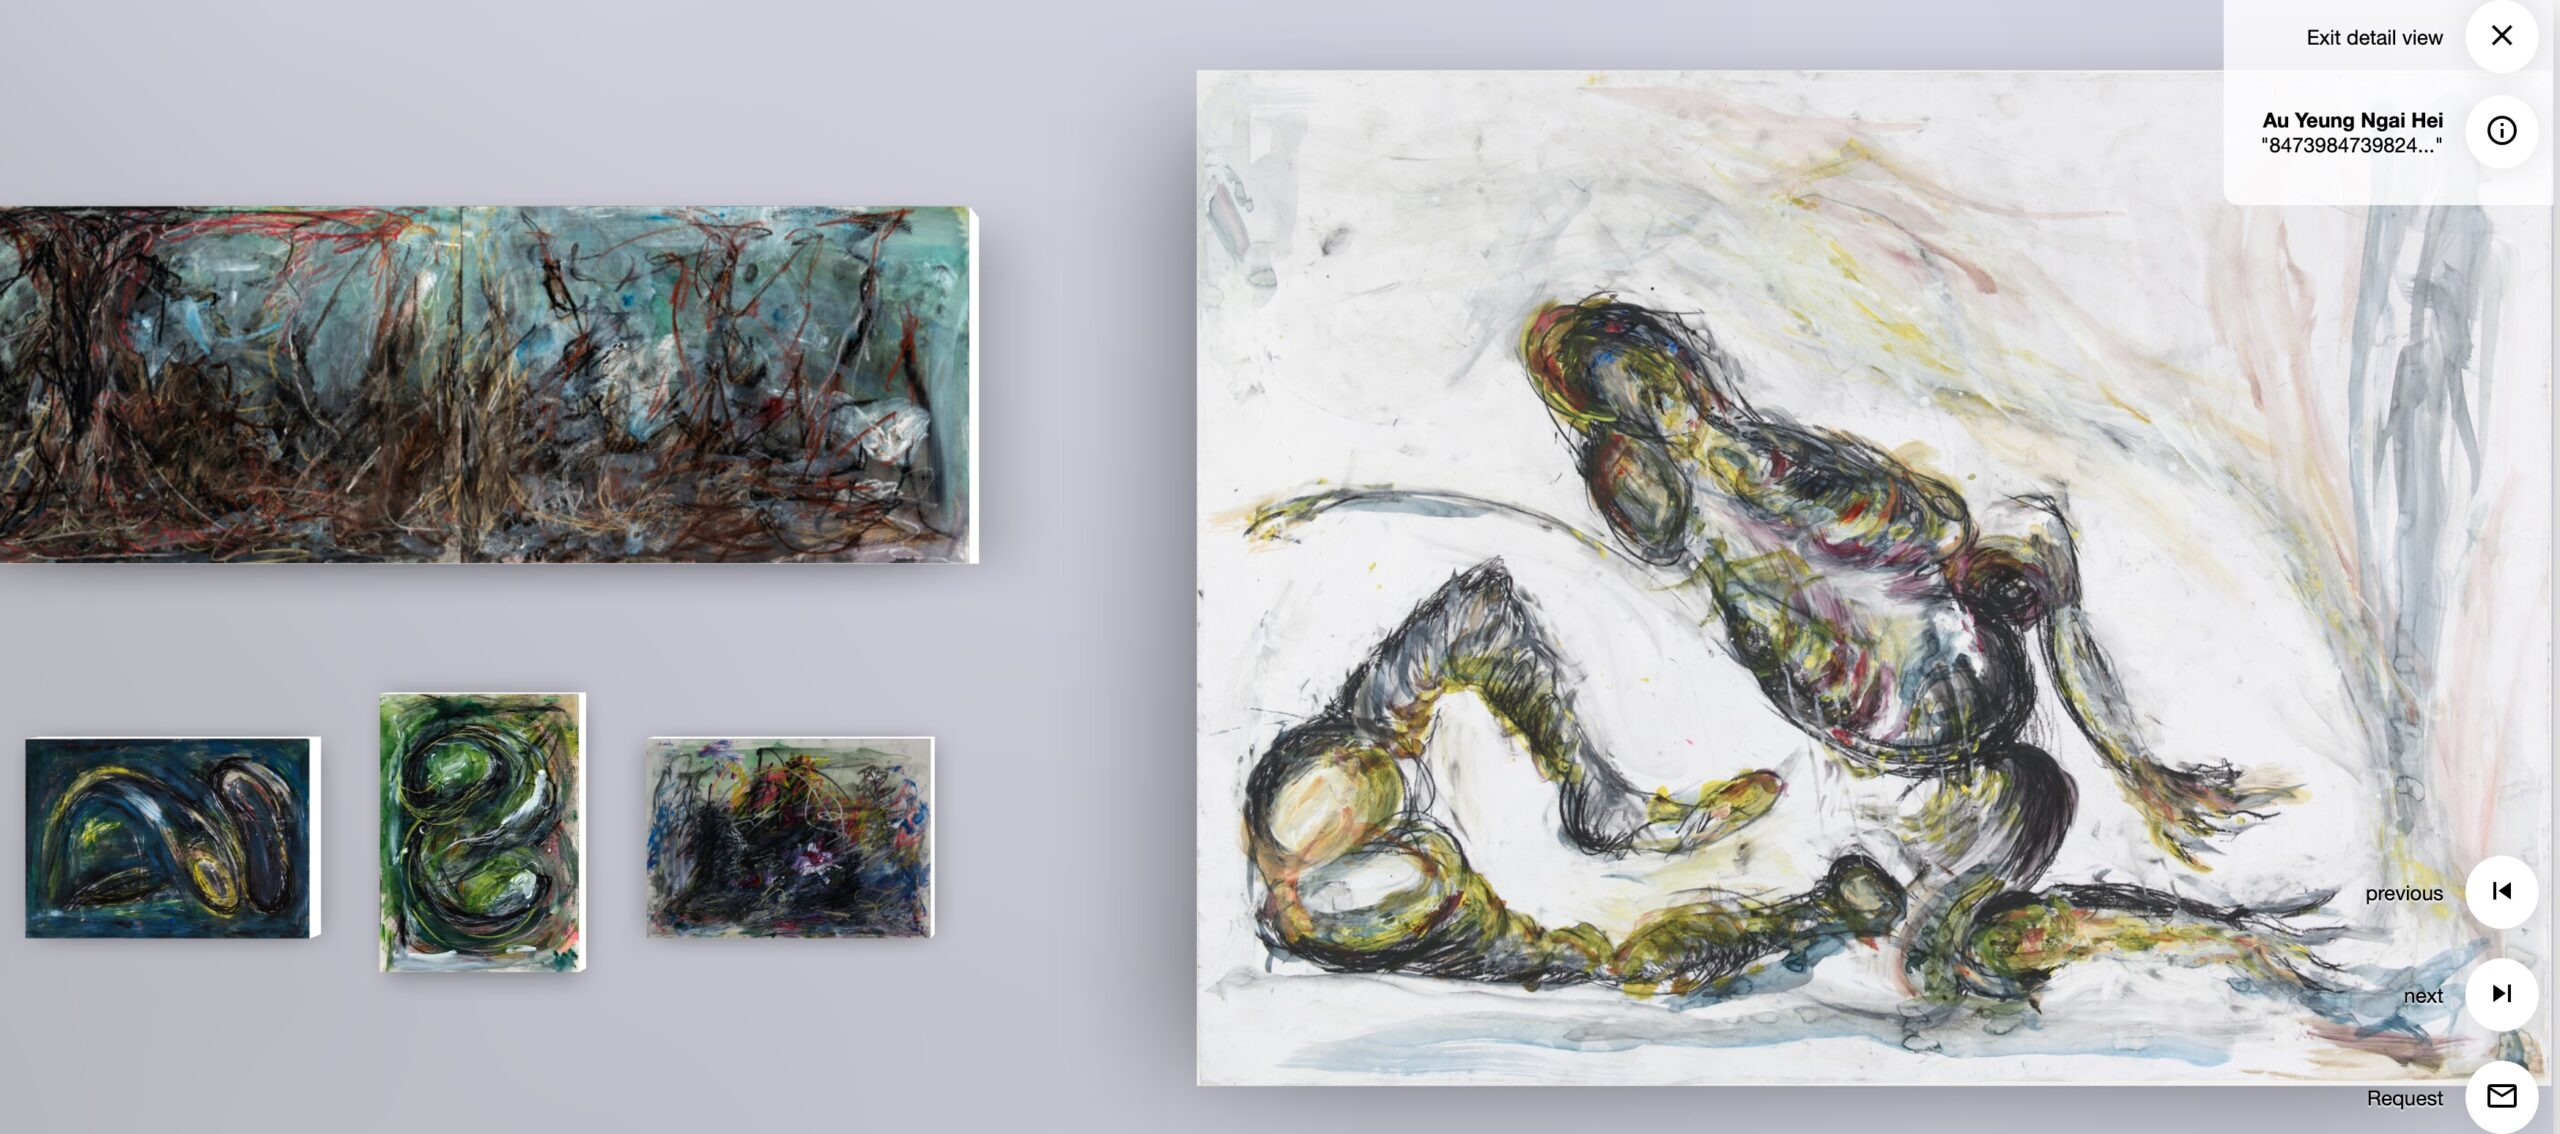 a virtual gallery with grey walls displays expressionistic artworks